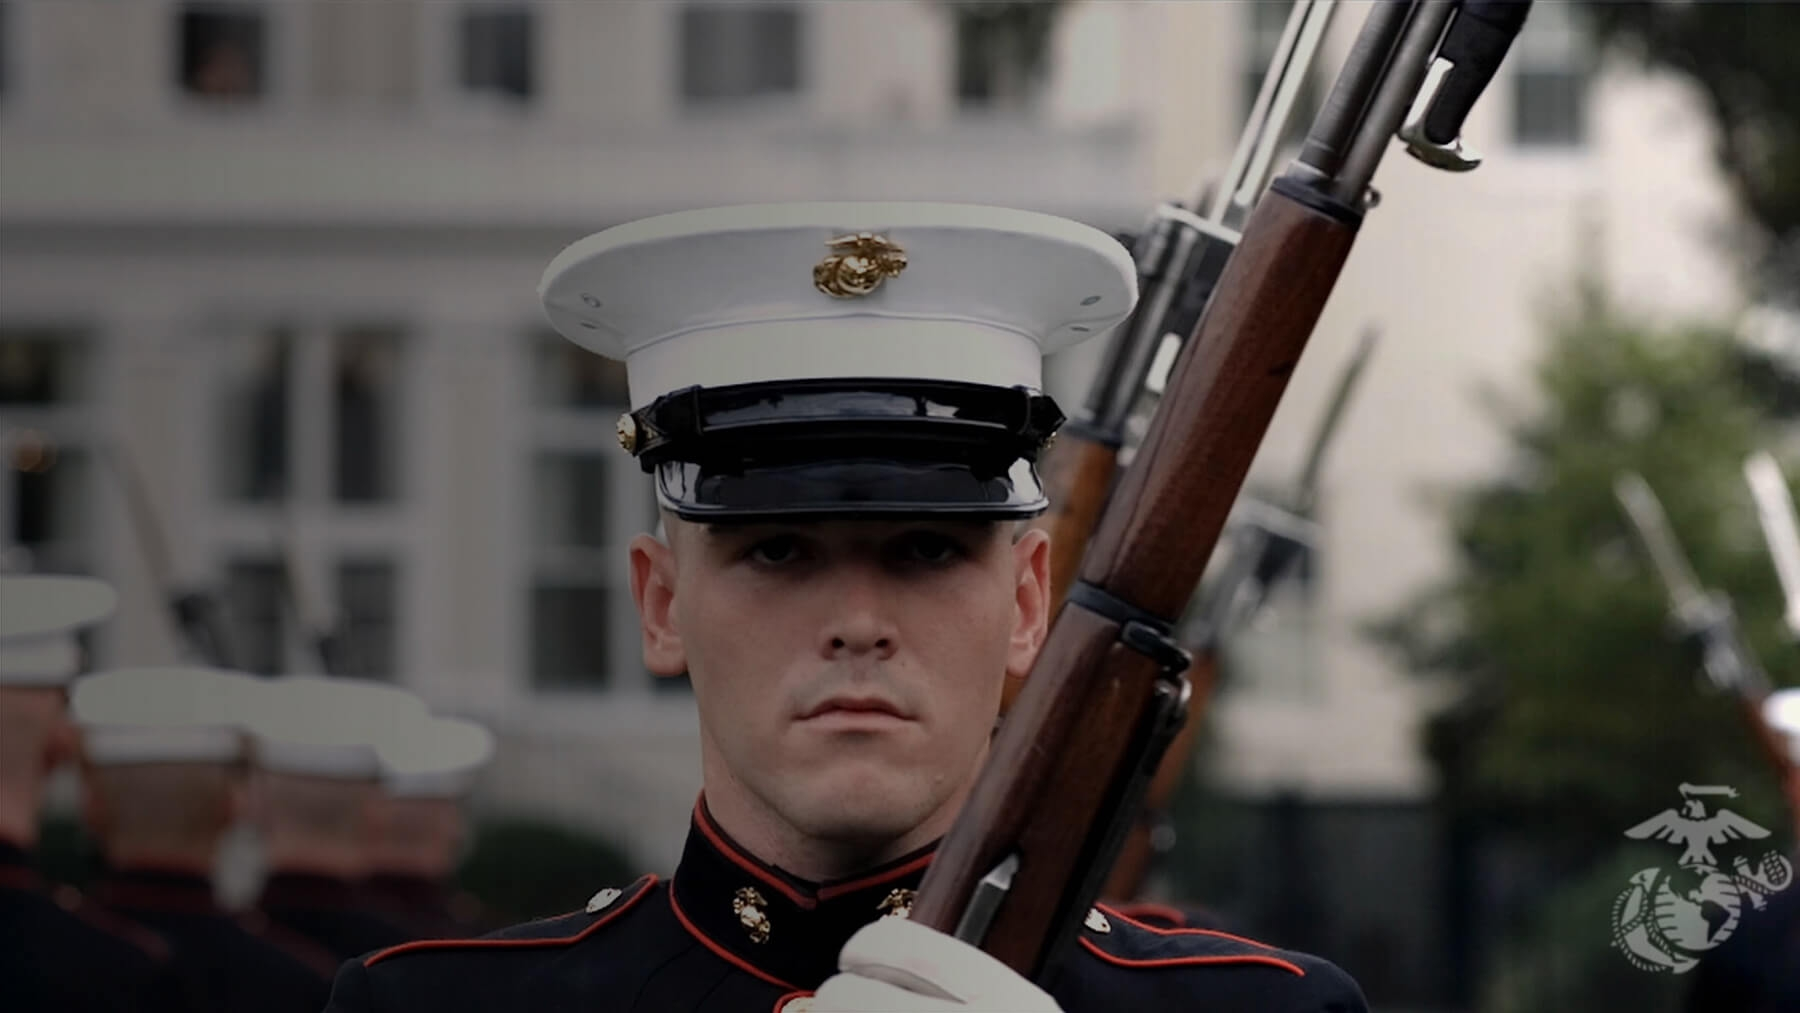 Long form video showcases values such as integrity and Marines use those values to make decisions.